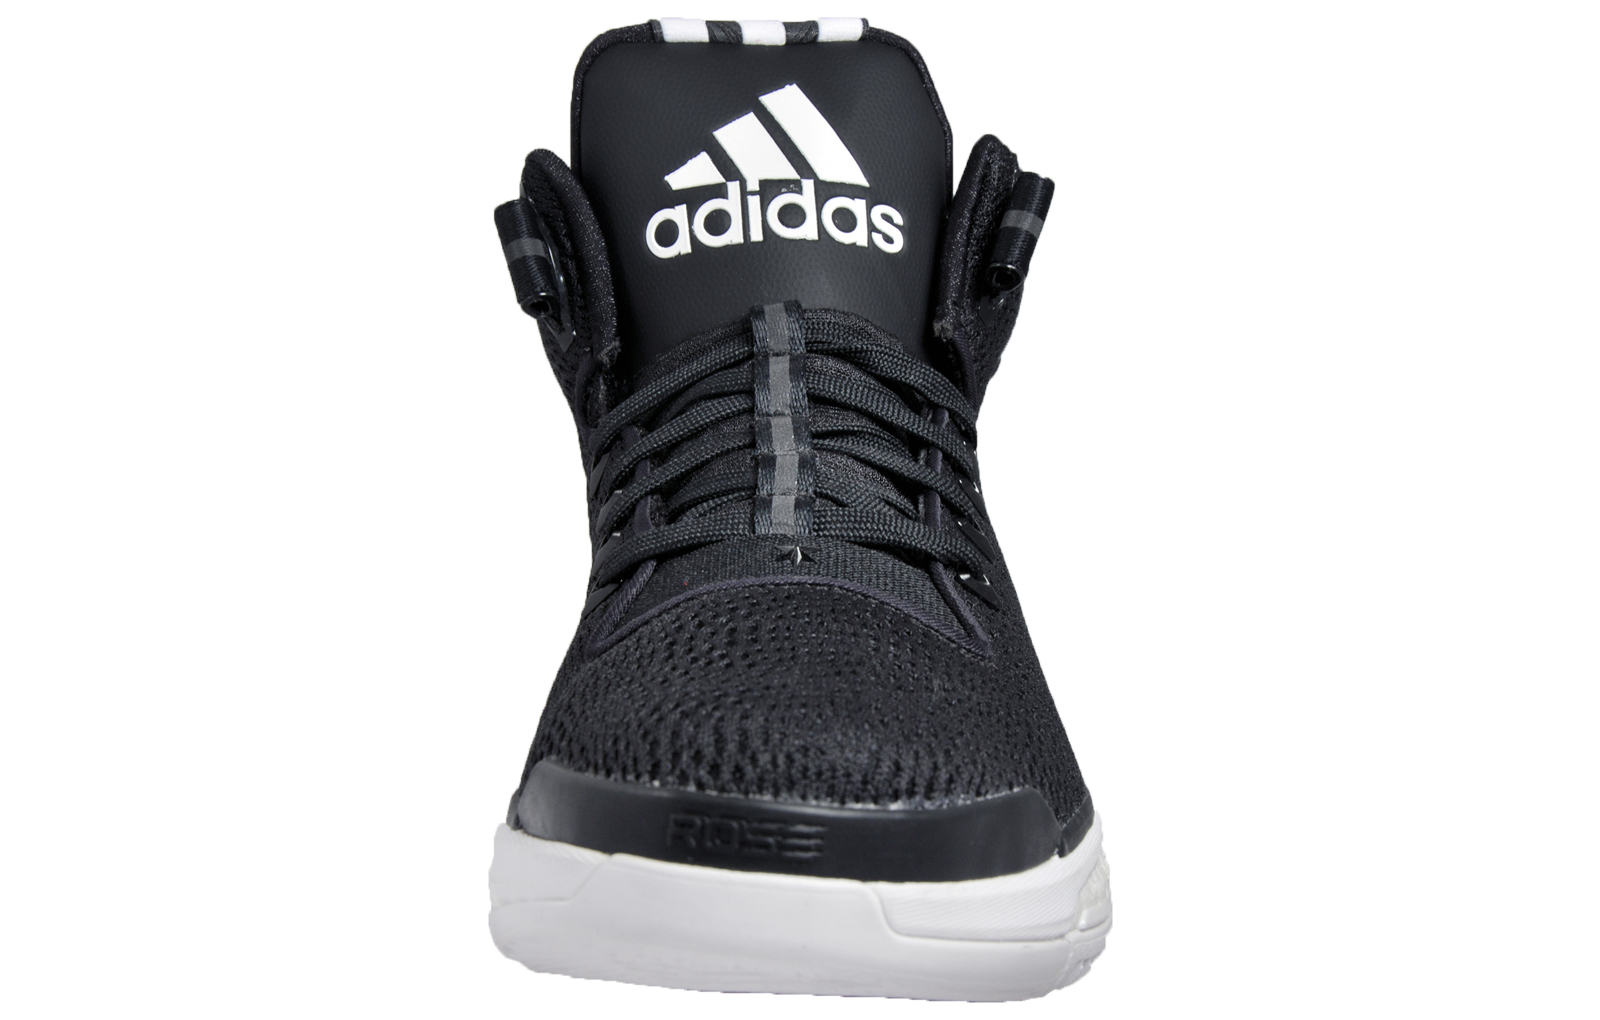 bf30cf46e Adidas D Rose 6 Boost Mens Basketball Shoes Fitness Gym Court ...